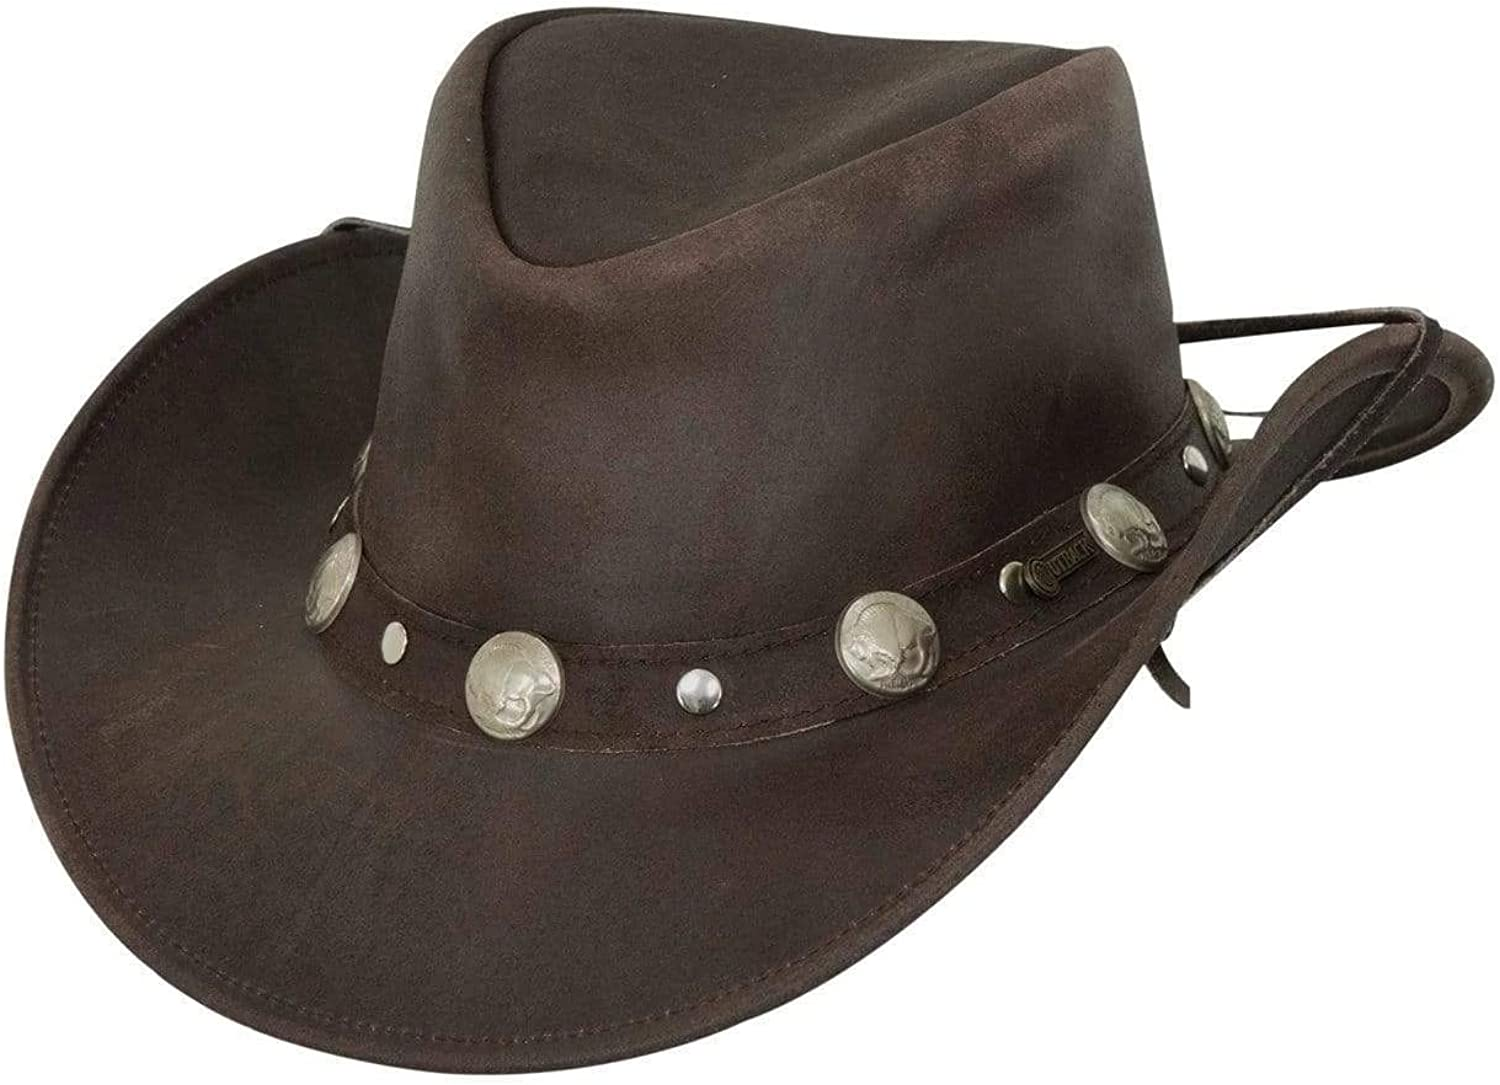 Outback Trading Men's 1376 Rawhide UPF wi 50 Hat Leather Western Chicago Mall Ranking integrated 1st place